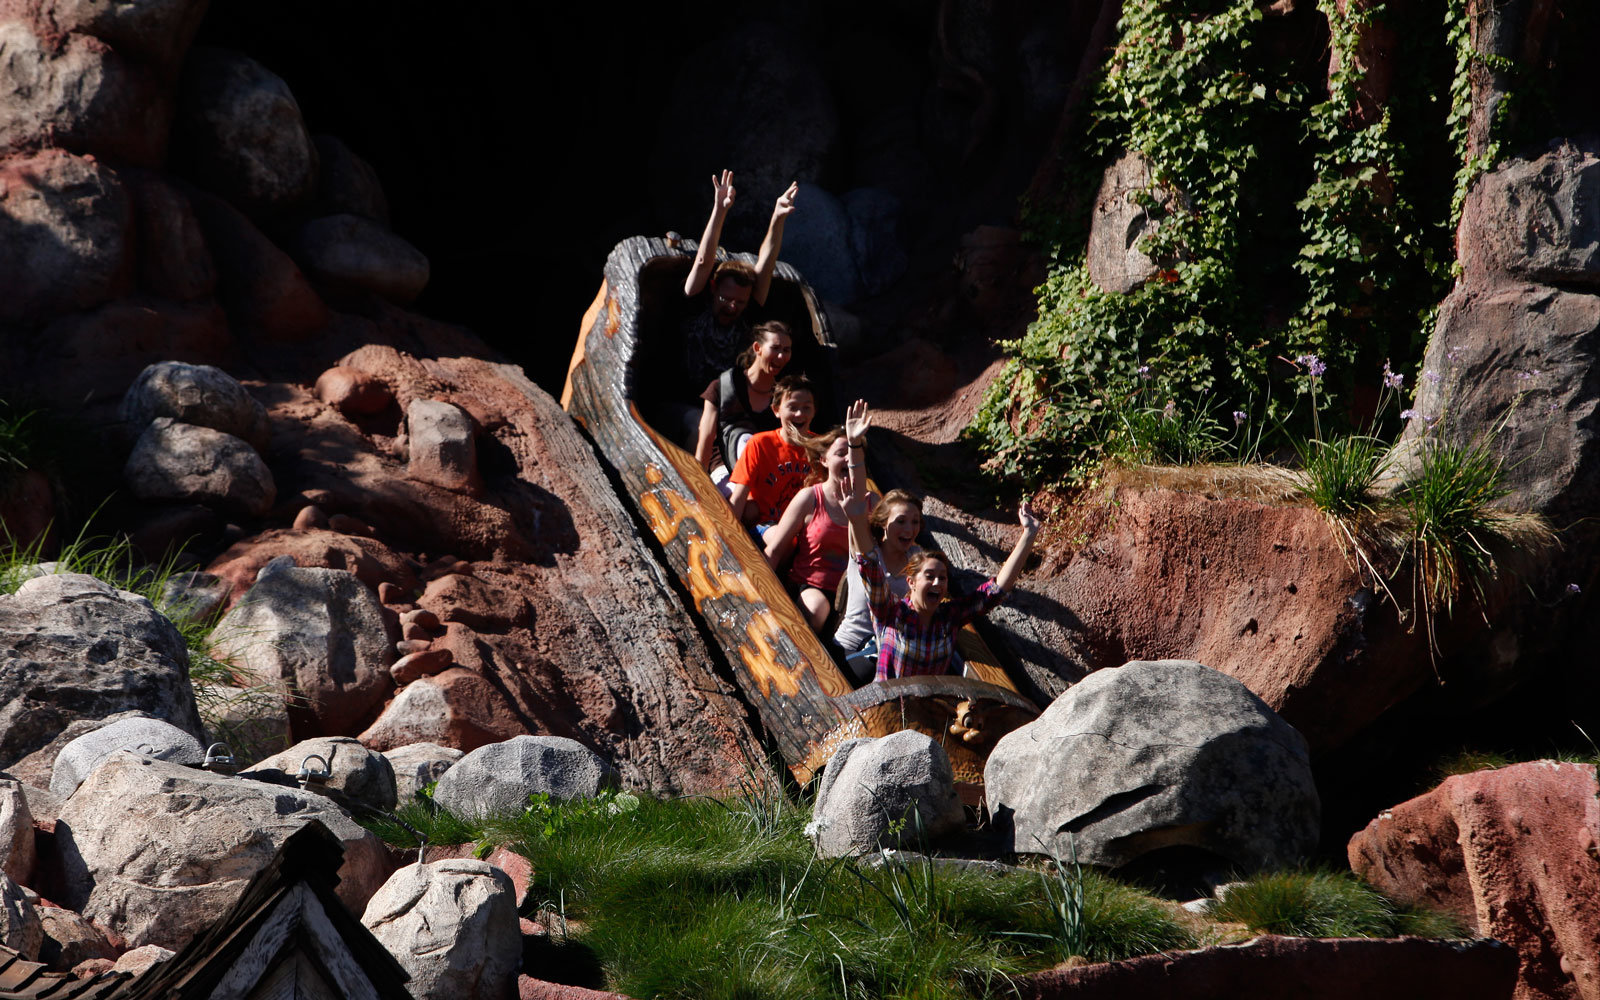 Splash Mountain — Disneyland, Magic Kingdom, Tokyo Disneyland